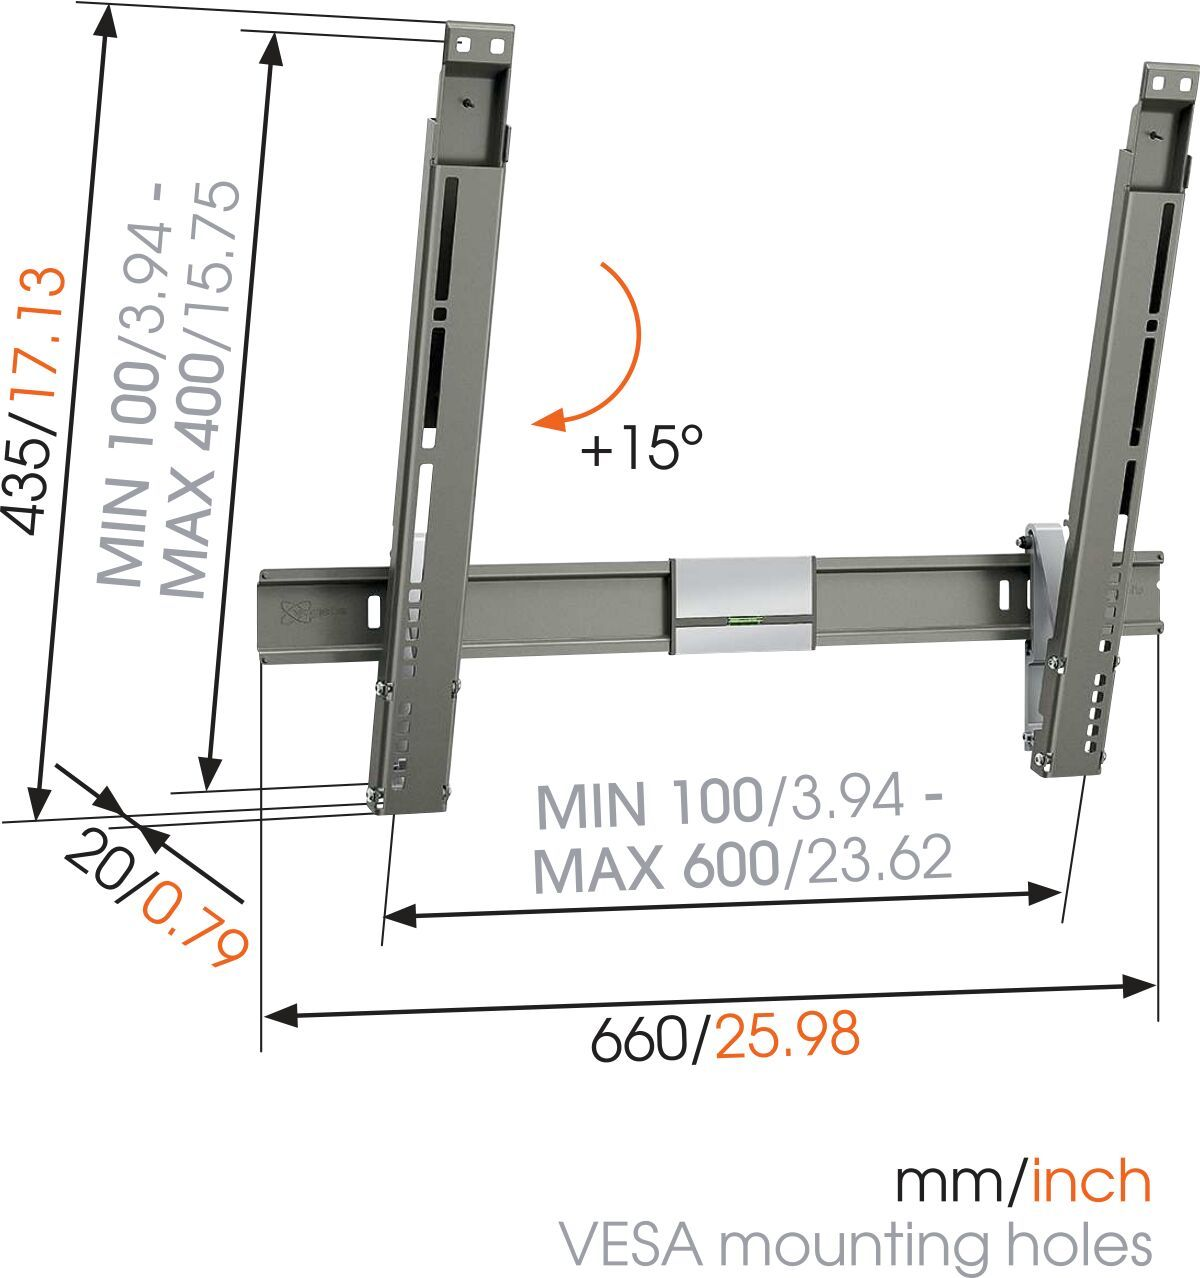 Vogel's THIN 315 UltraThin Tilting TV Wall Mount - Suitable for 40 up to 65 inch TVs up to 25 kg - Tilt up to 15° - Dimensions